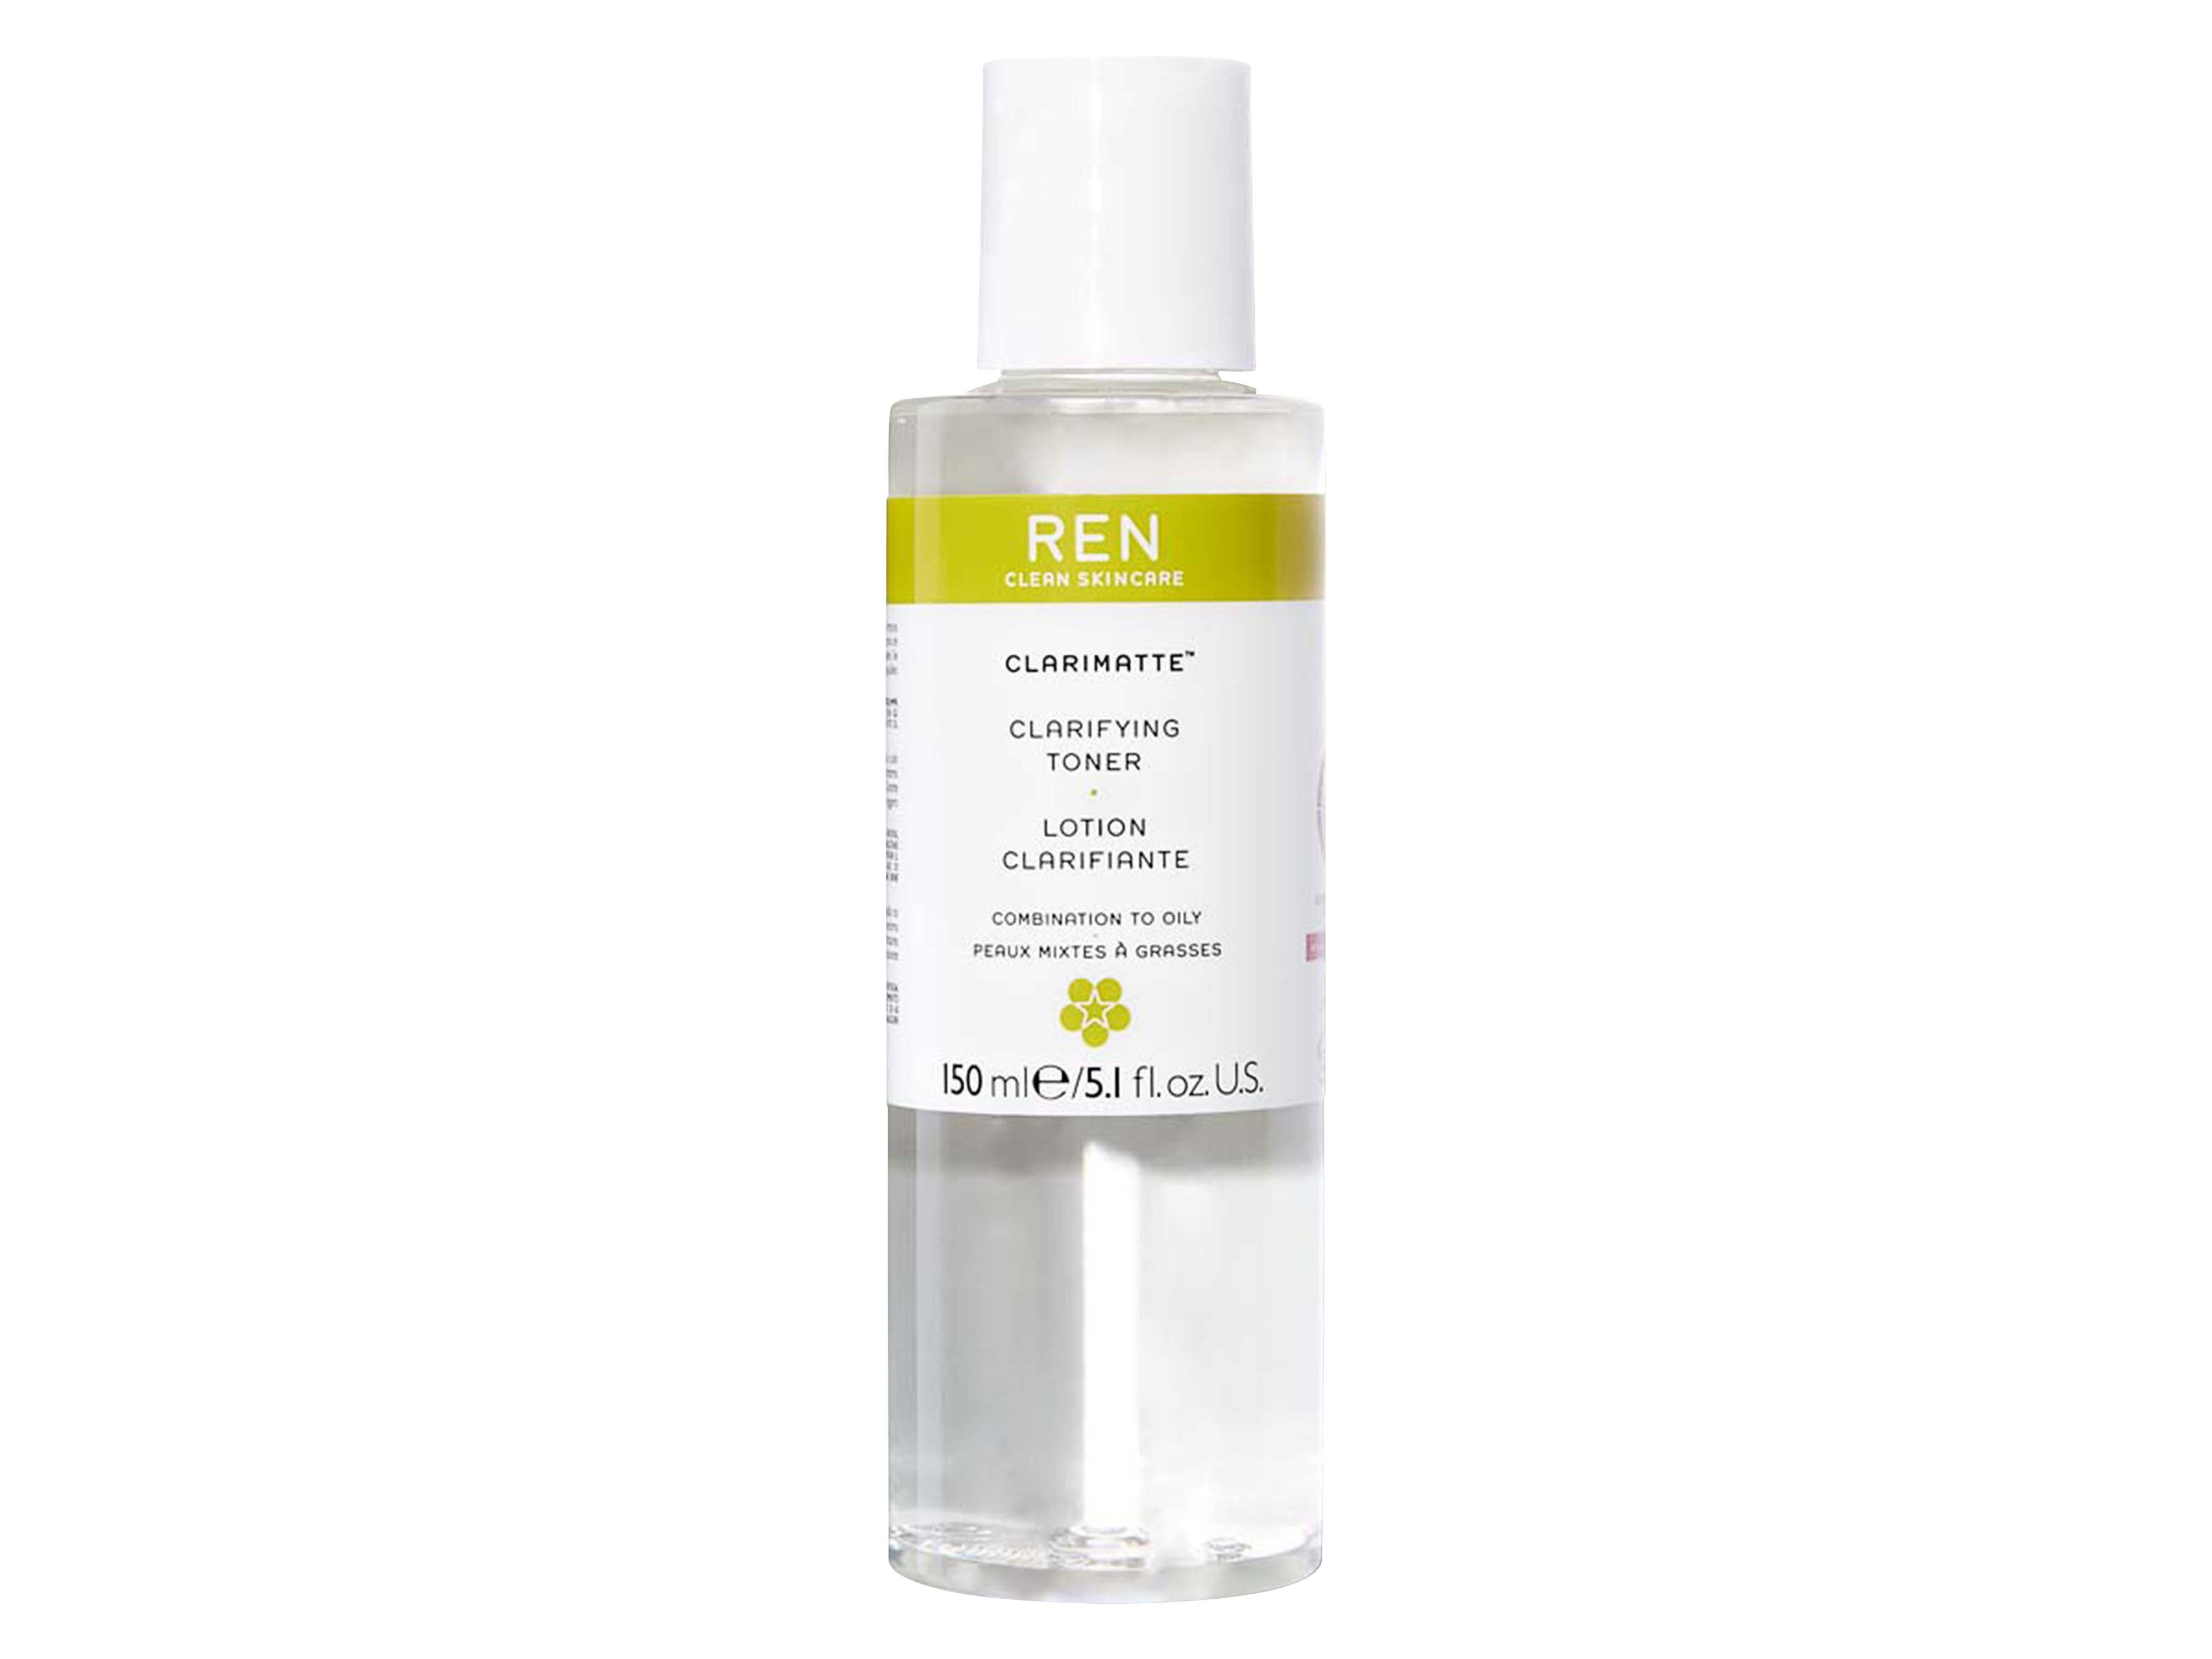 REN Clarimatte Clarifying Toner Lotion, 150 ml